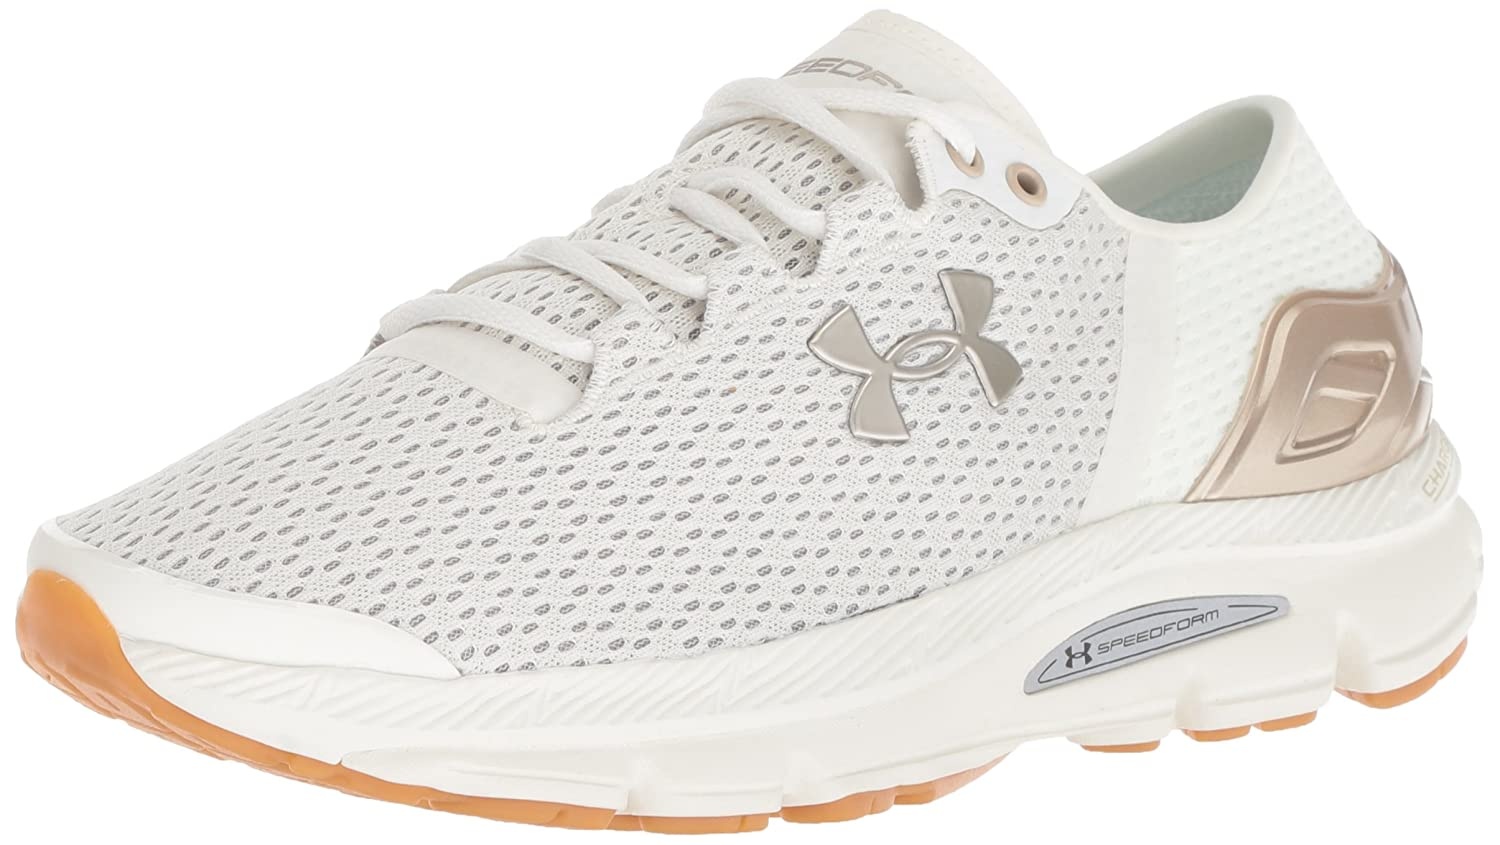 Under Armour Women's Speedform Intake 2 Running Shoe B0775YZY7J 5.5 M US|Ivory (102)/Ghost Gray